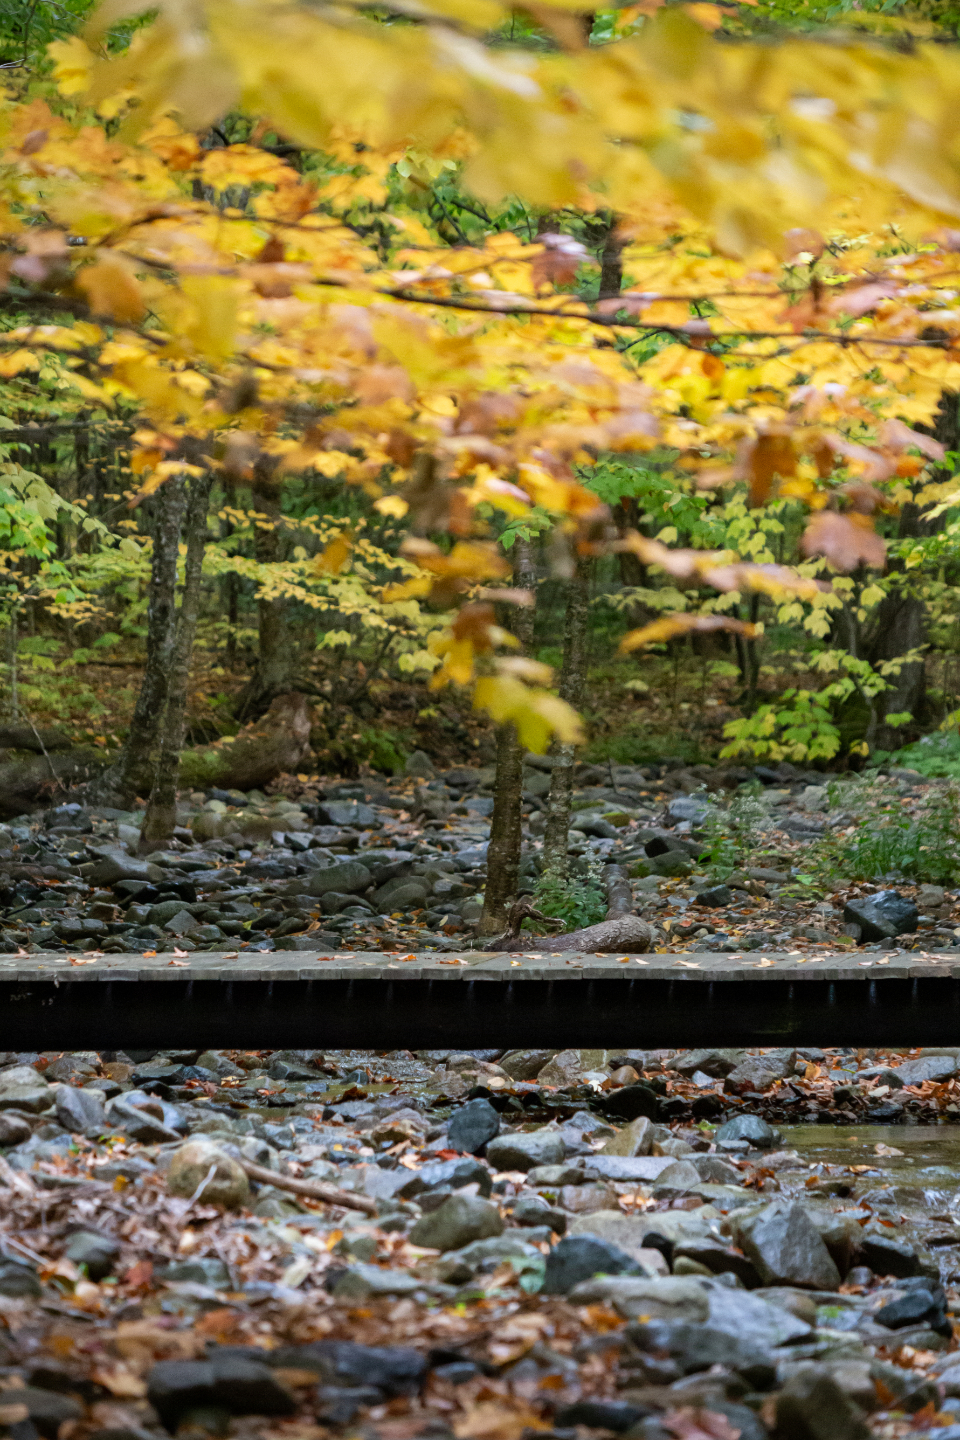 autumn woods nature forest hike trees fall foliage colorful peaceful adventure outdoors leaves rock